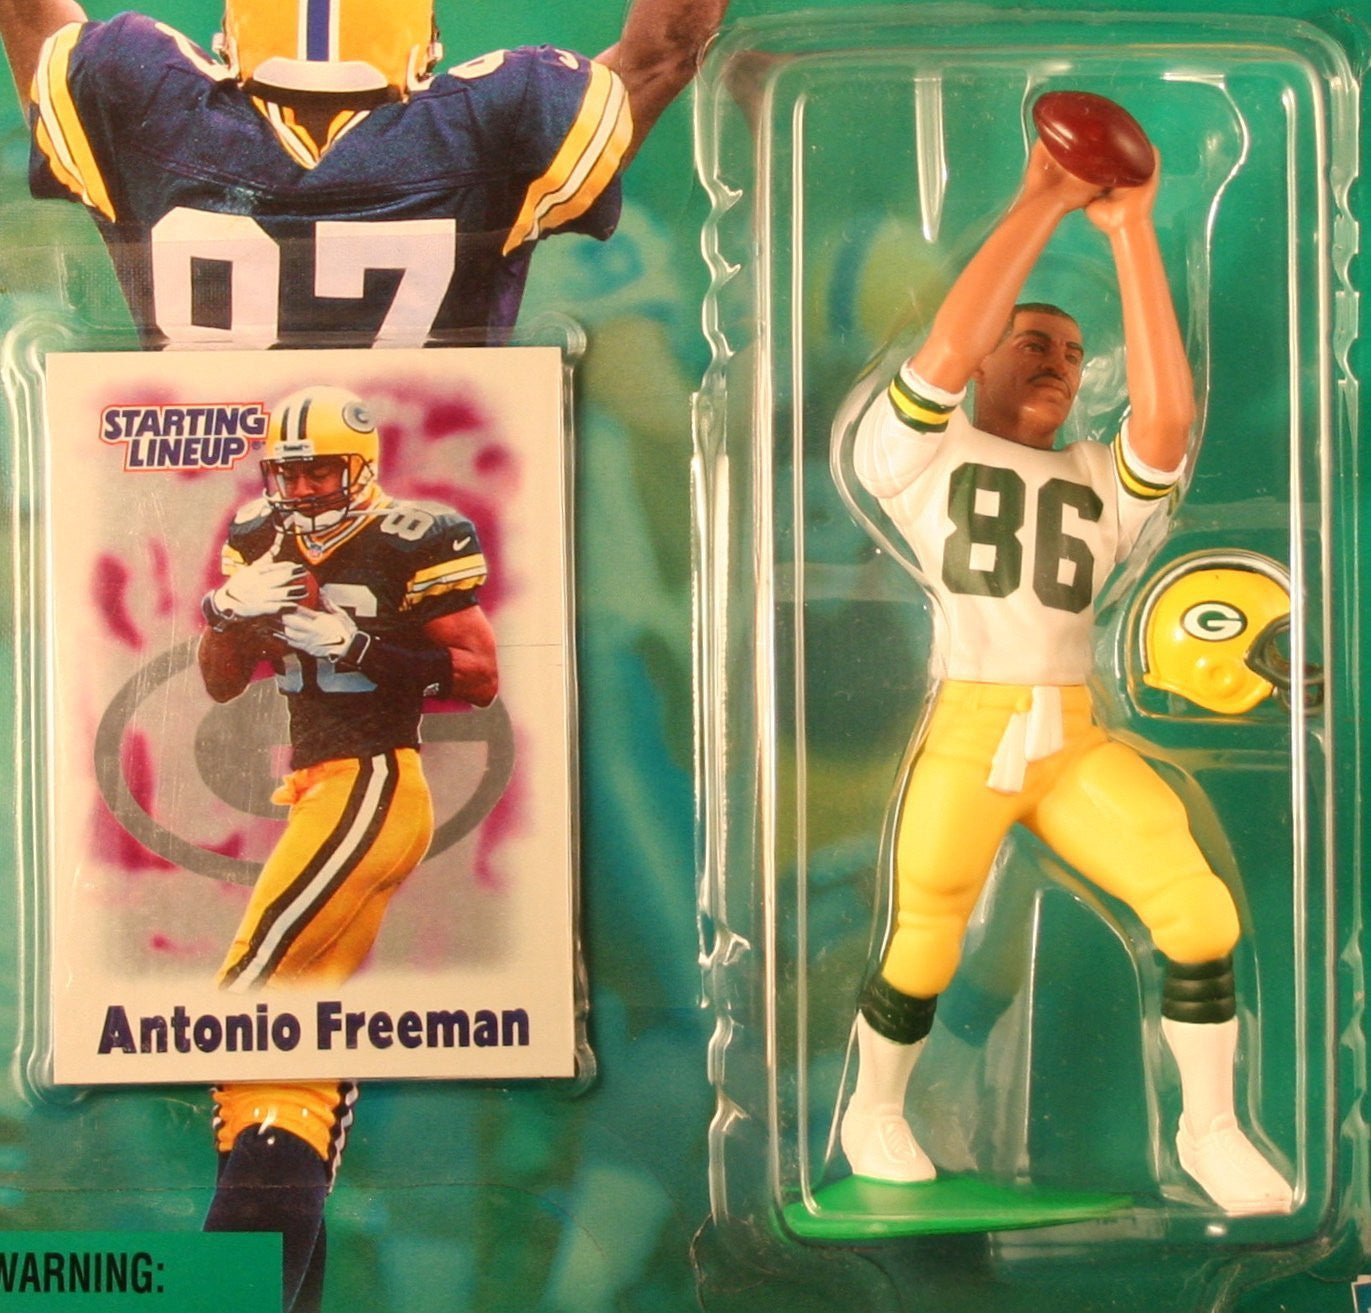 ANTONIO FREEMAN / GREEN BAY PACKERS 2000-2001 NFL Starting Lineup Action Figure & Exclusive NFL Collector Trading Card